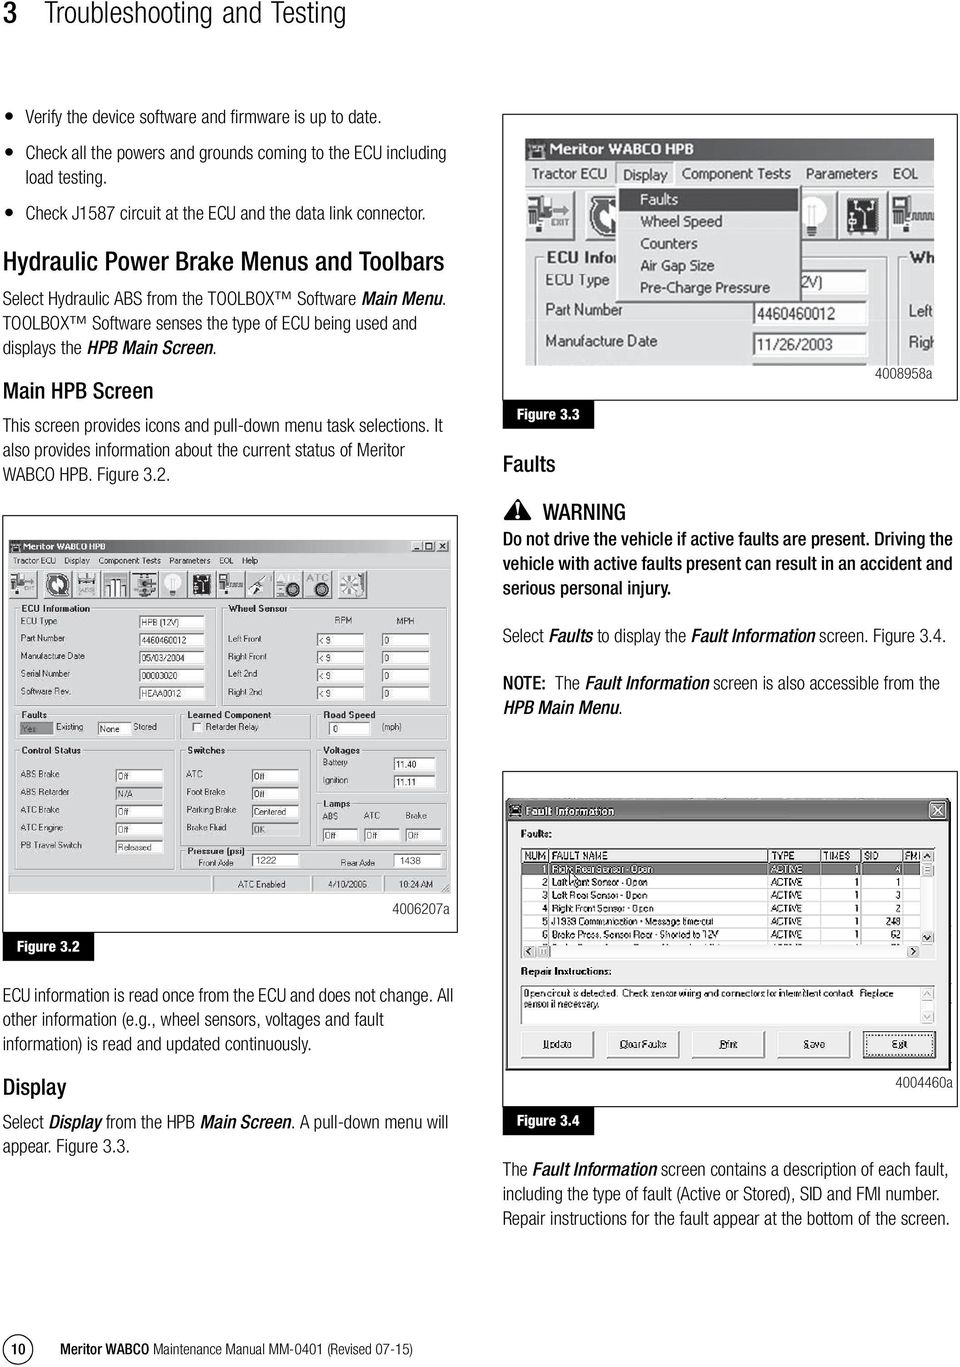 meritor wabco hydraulic power brake hpb system pdf toolbox software senses the type of ecu being used and displays the hpb main screen